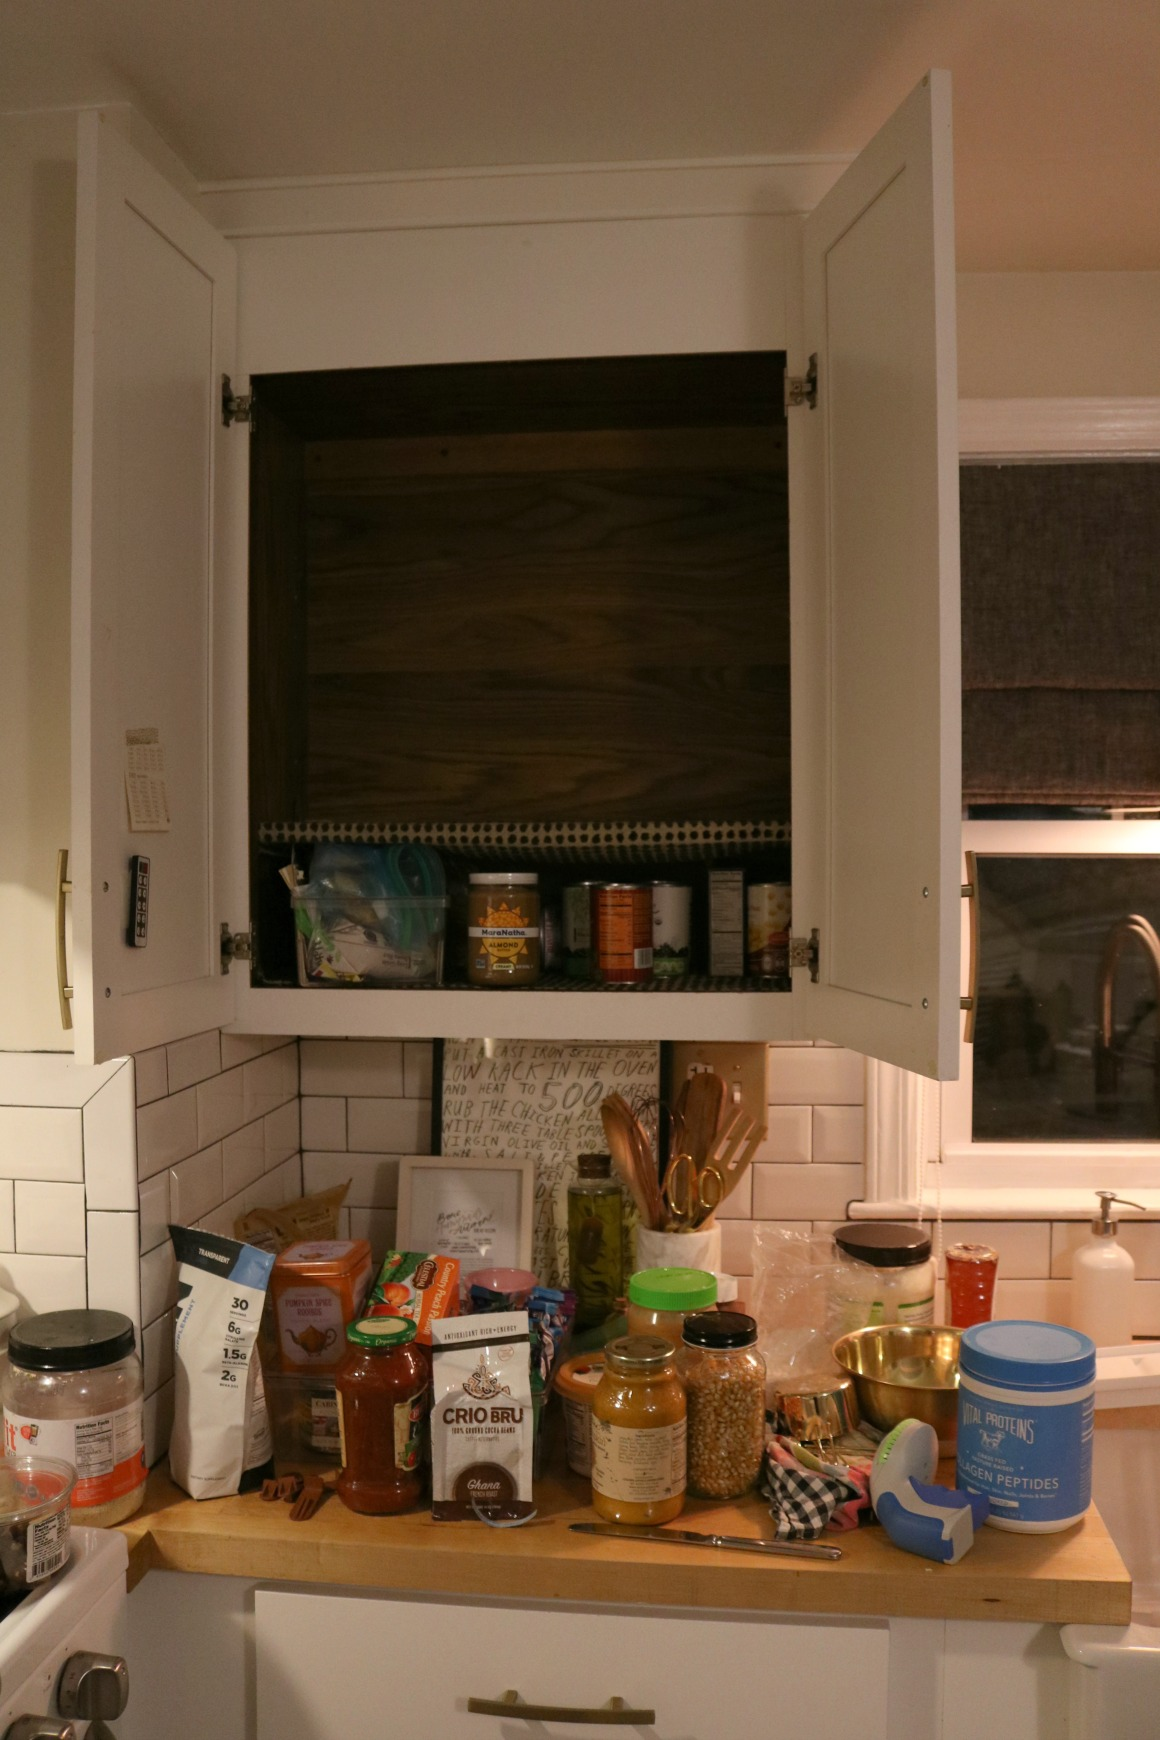 Small Space Living Series Kitchen Cabinets And Organizing